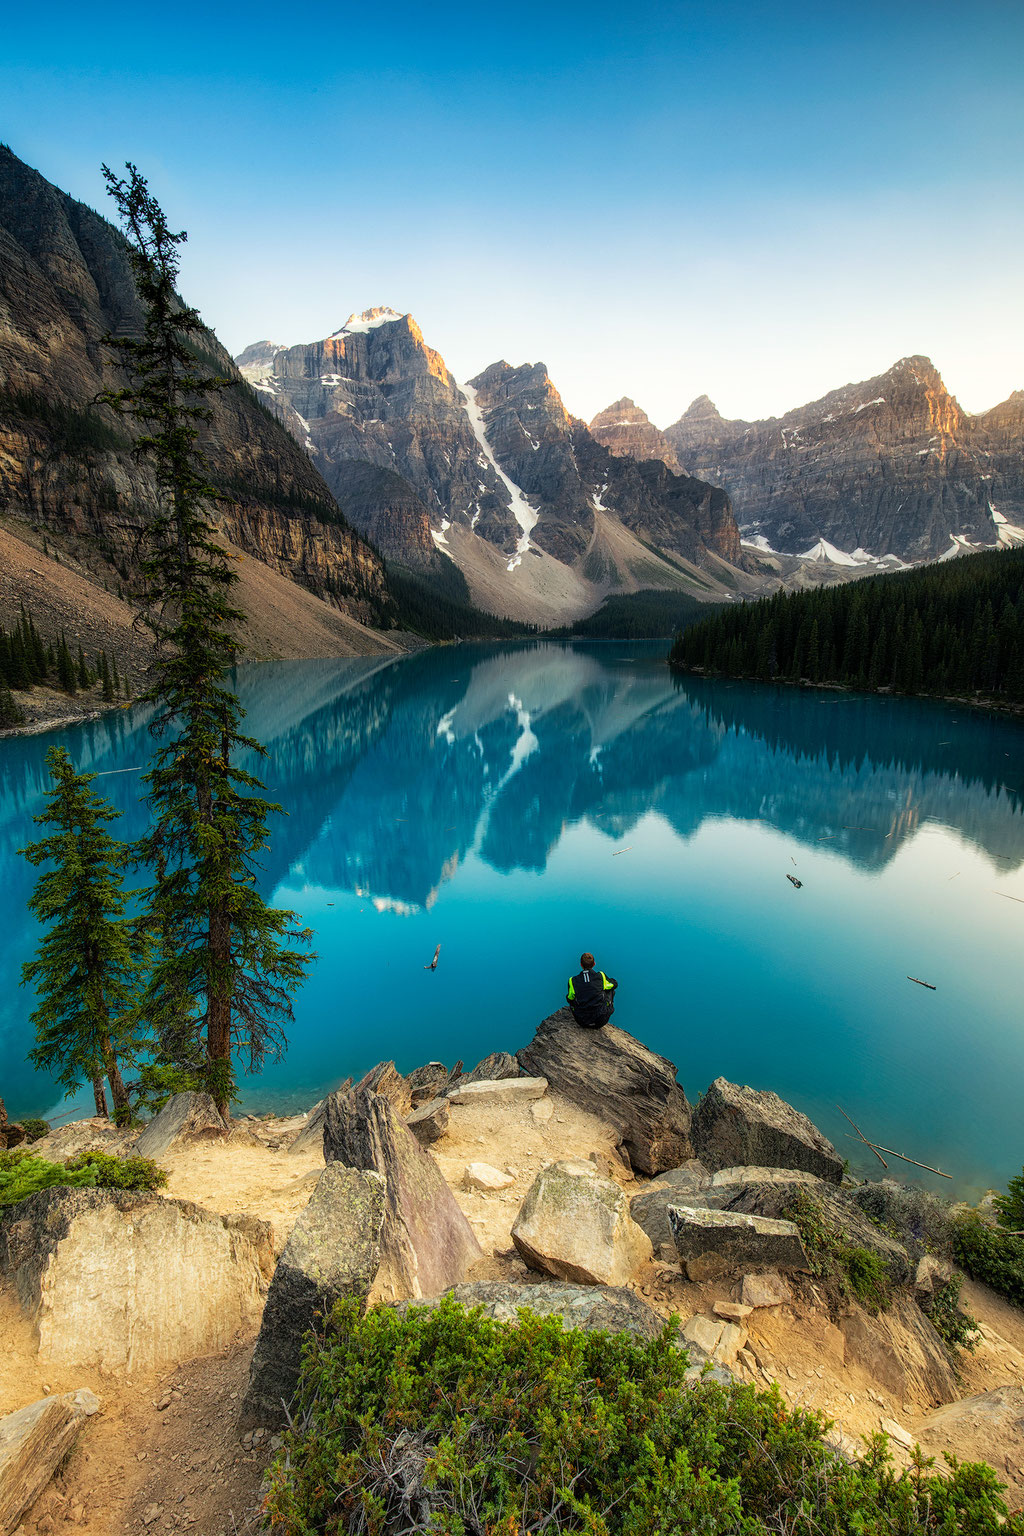 Summer vibes at Moraine Lake